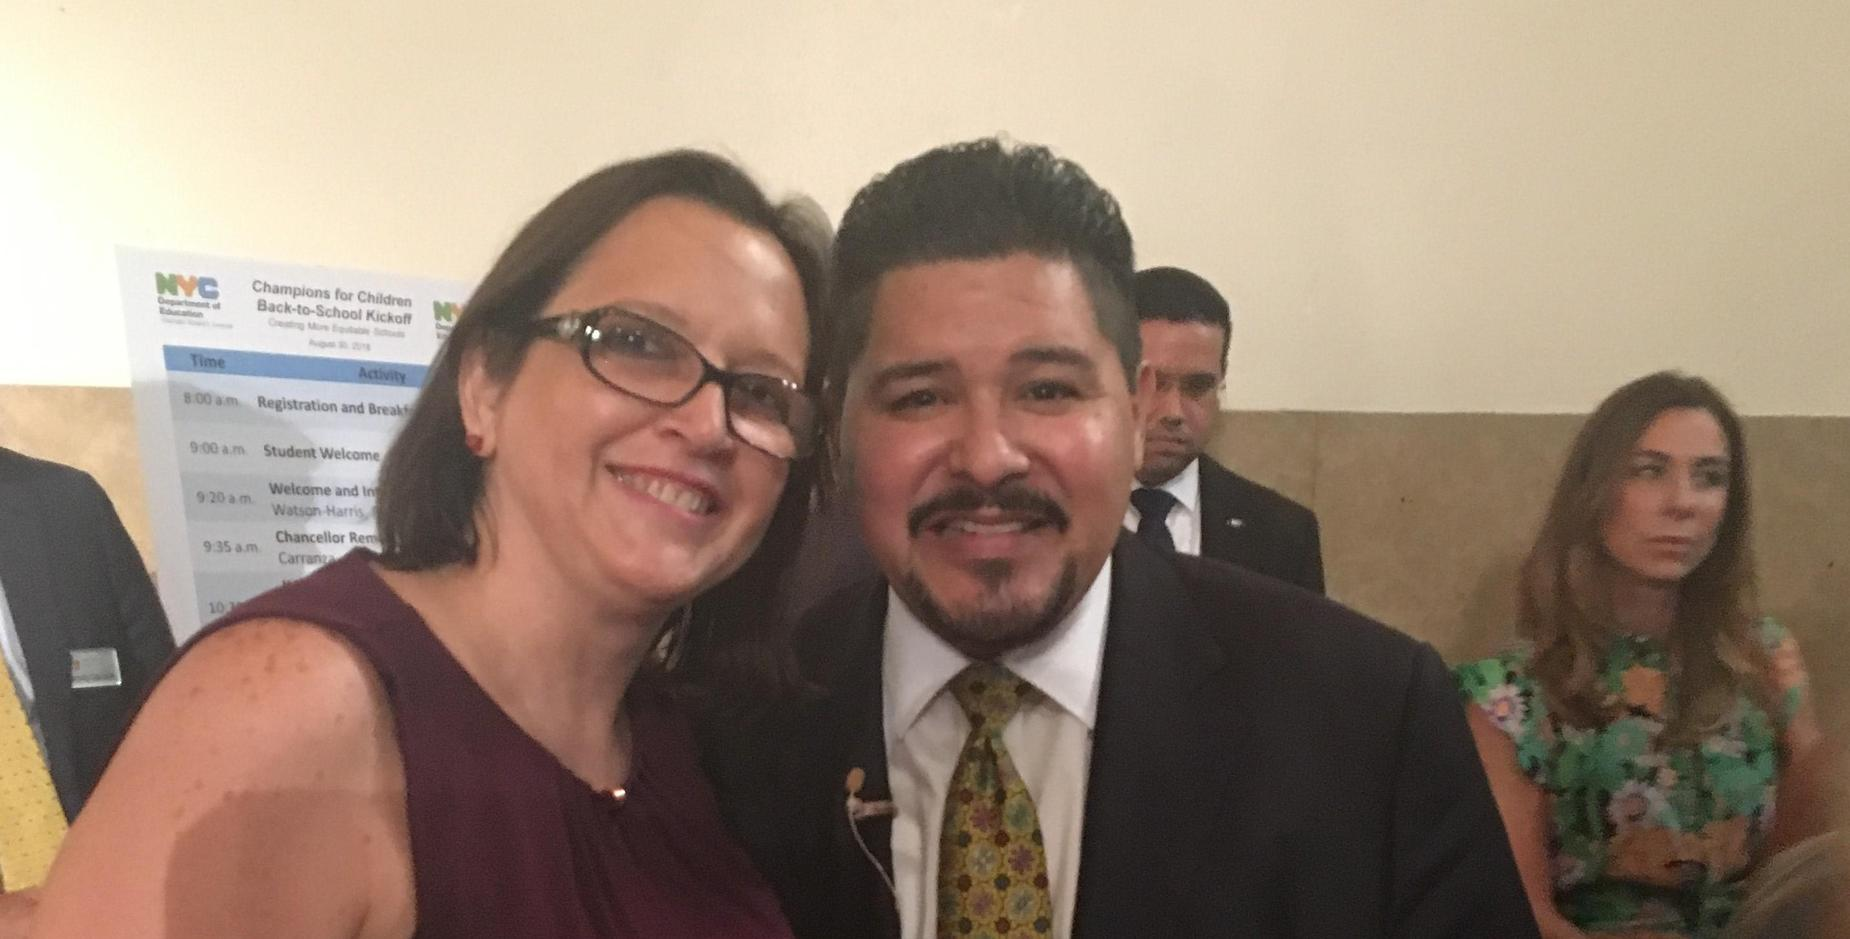 Principal Ms. Zambrano with School Chancellor Carranza